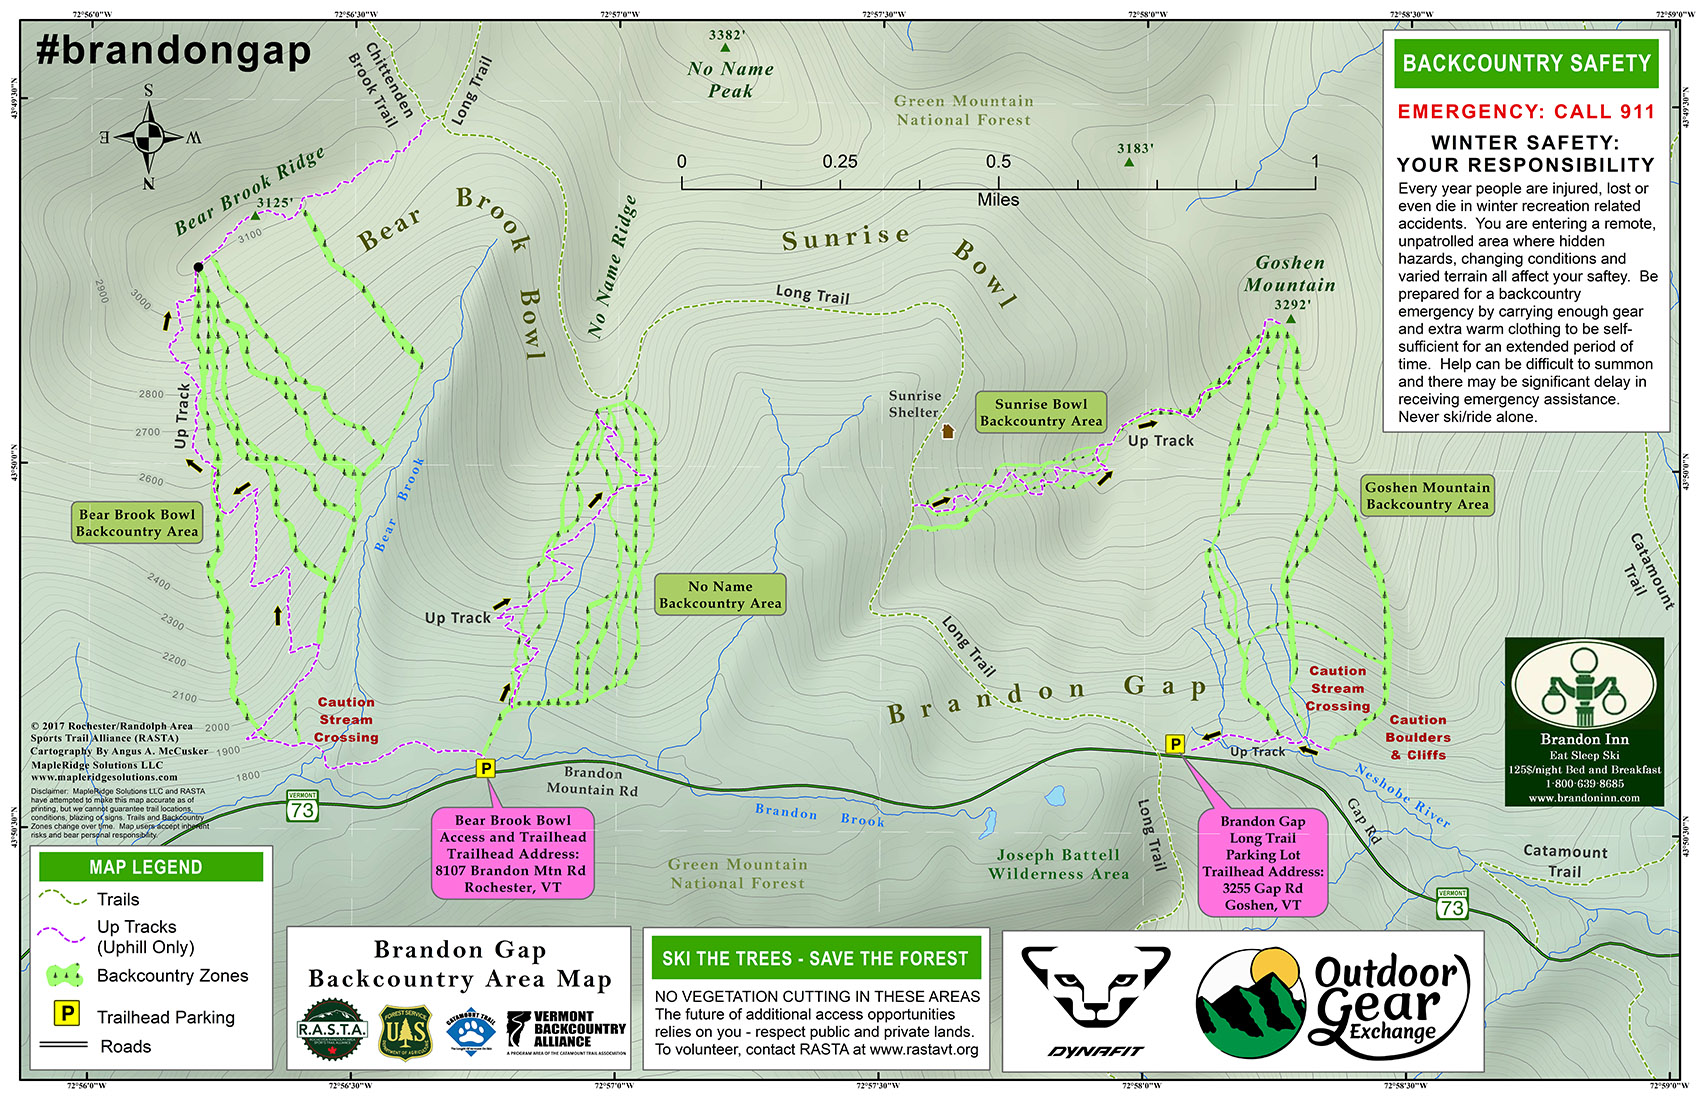 An image of the Brandon Gap backcountry ski map from the Rochester/Randolph Area Sport Trail Alliance